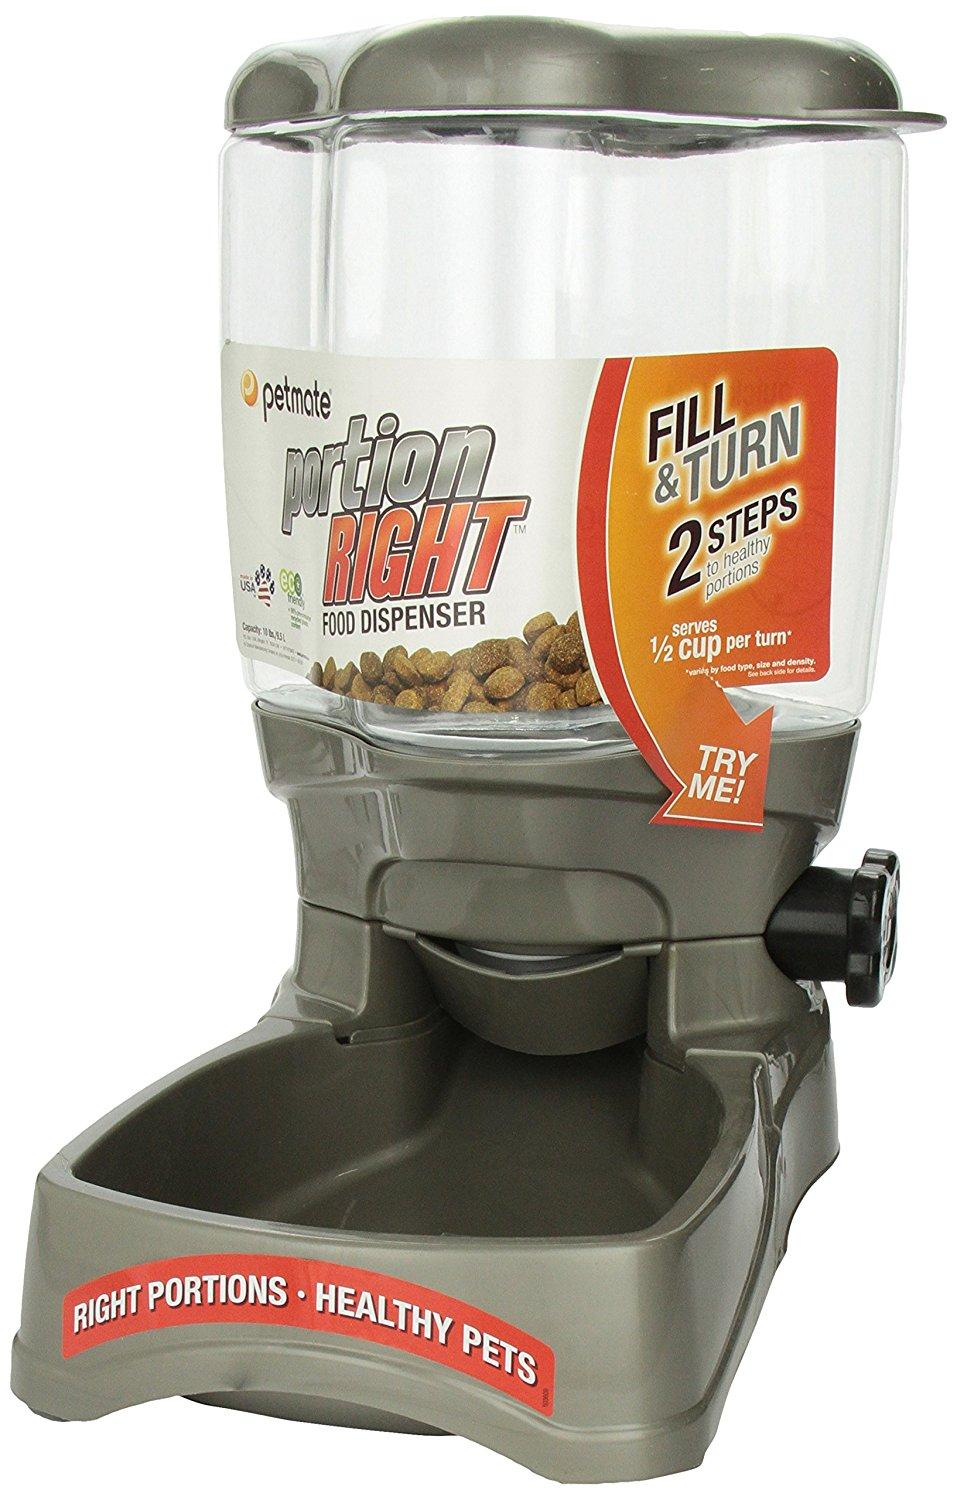 petmate portion right feeder review must read rh bestselfcleaninglitterbox com Le Bistro Feeder petmate automatic pet feeder manual